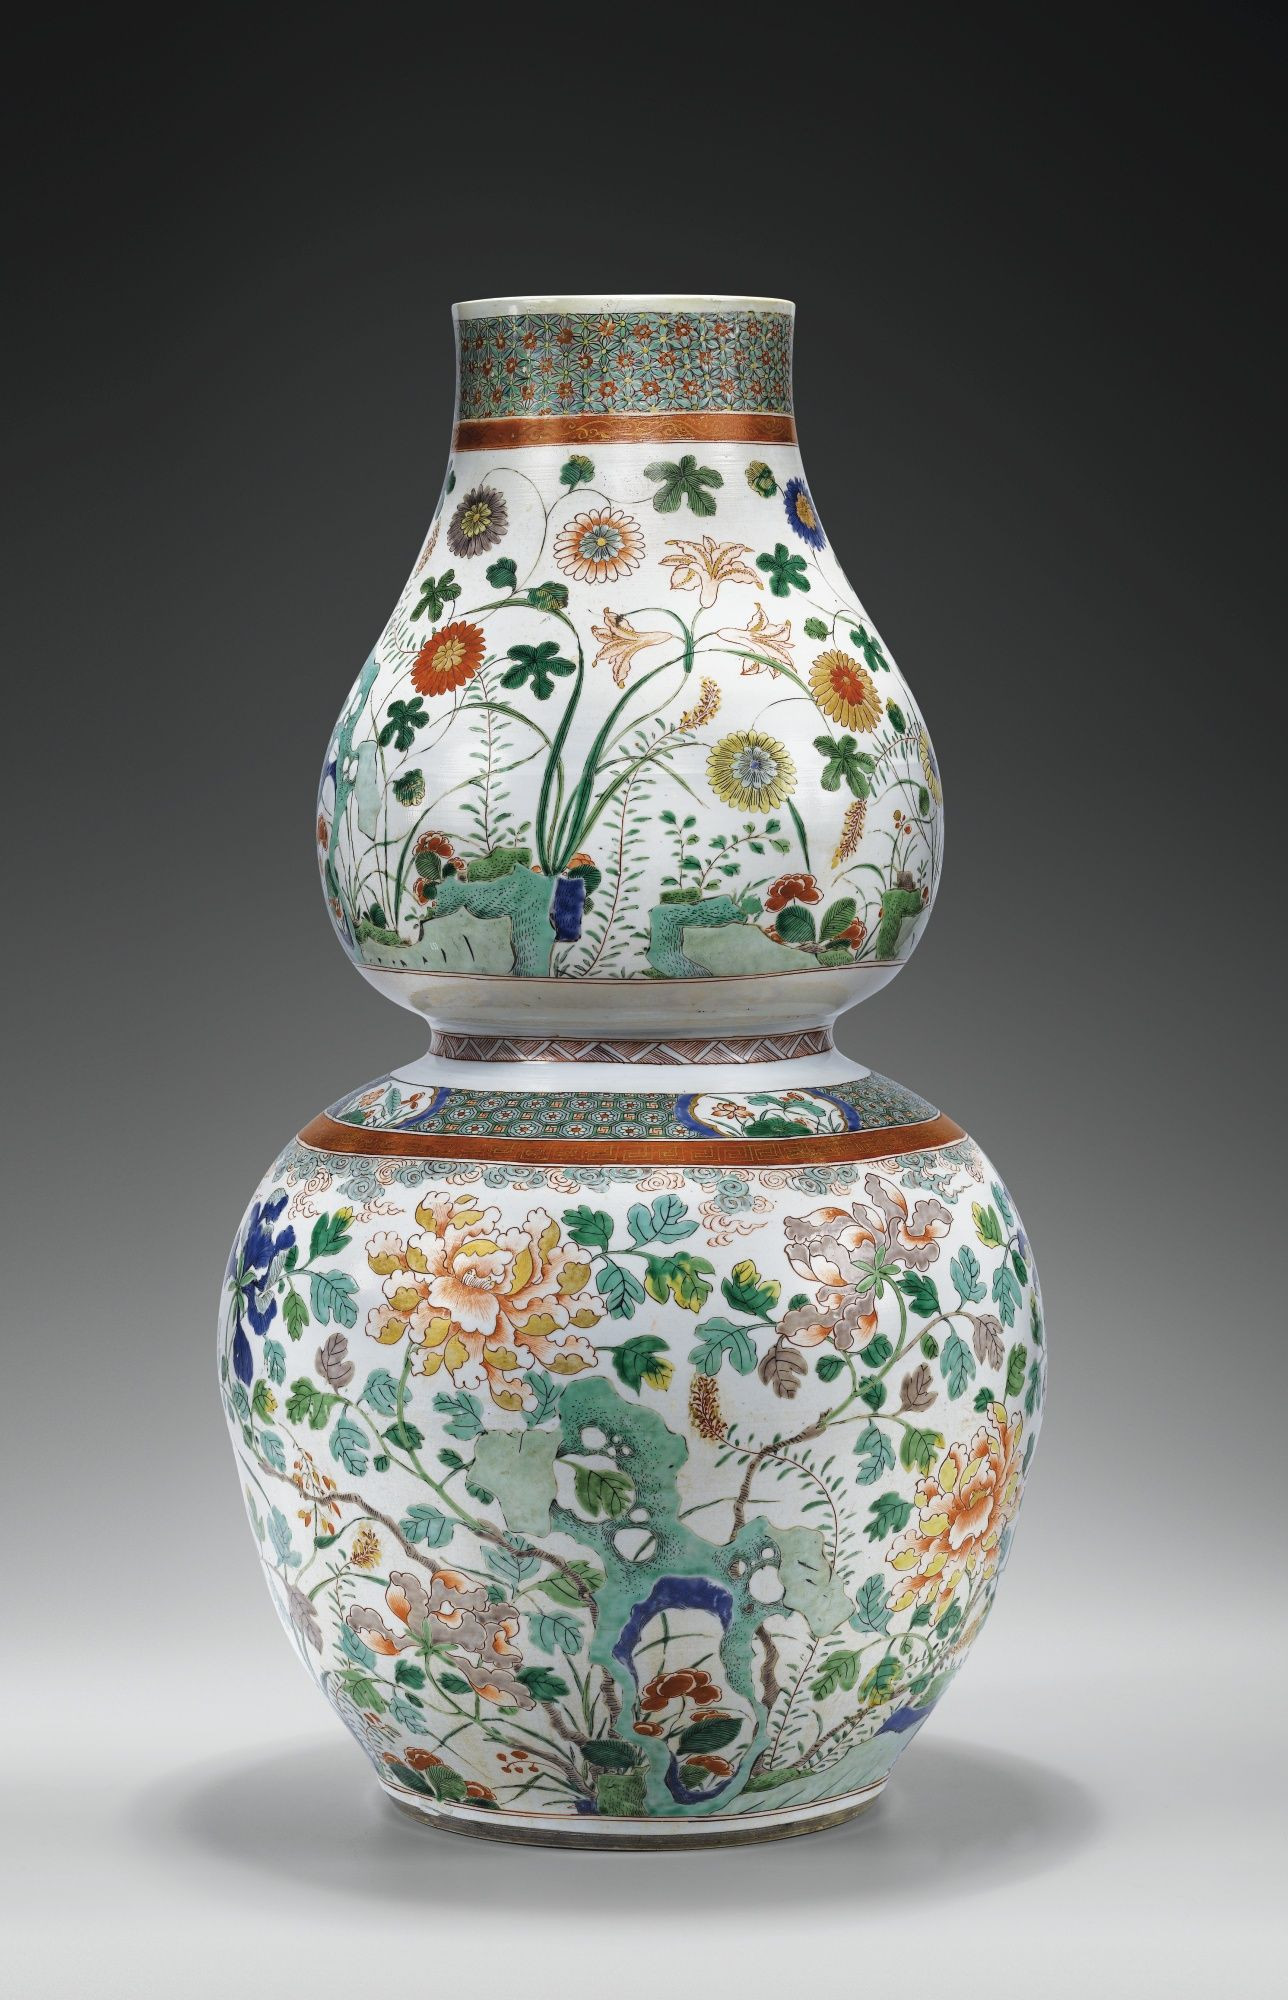 ancient chinese vases of large antique chinese craquel famille rose vase 19th cent pertaining to an unusual large double gourd shaped famille verte vase qing dynasty kangxi